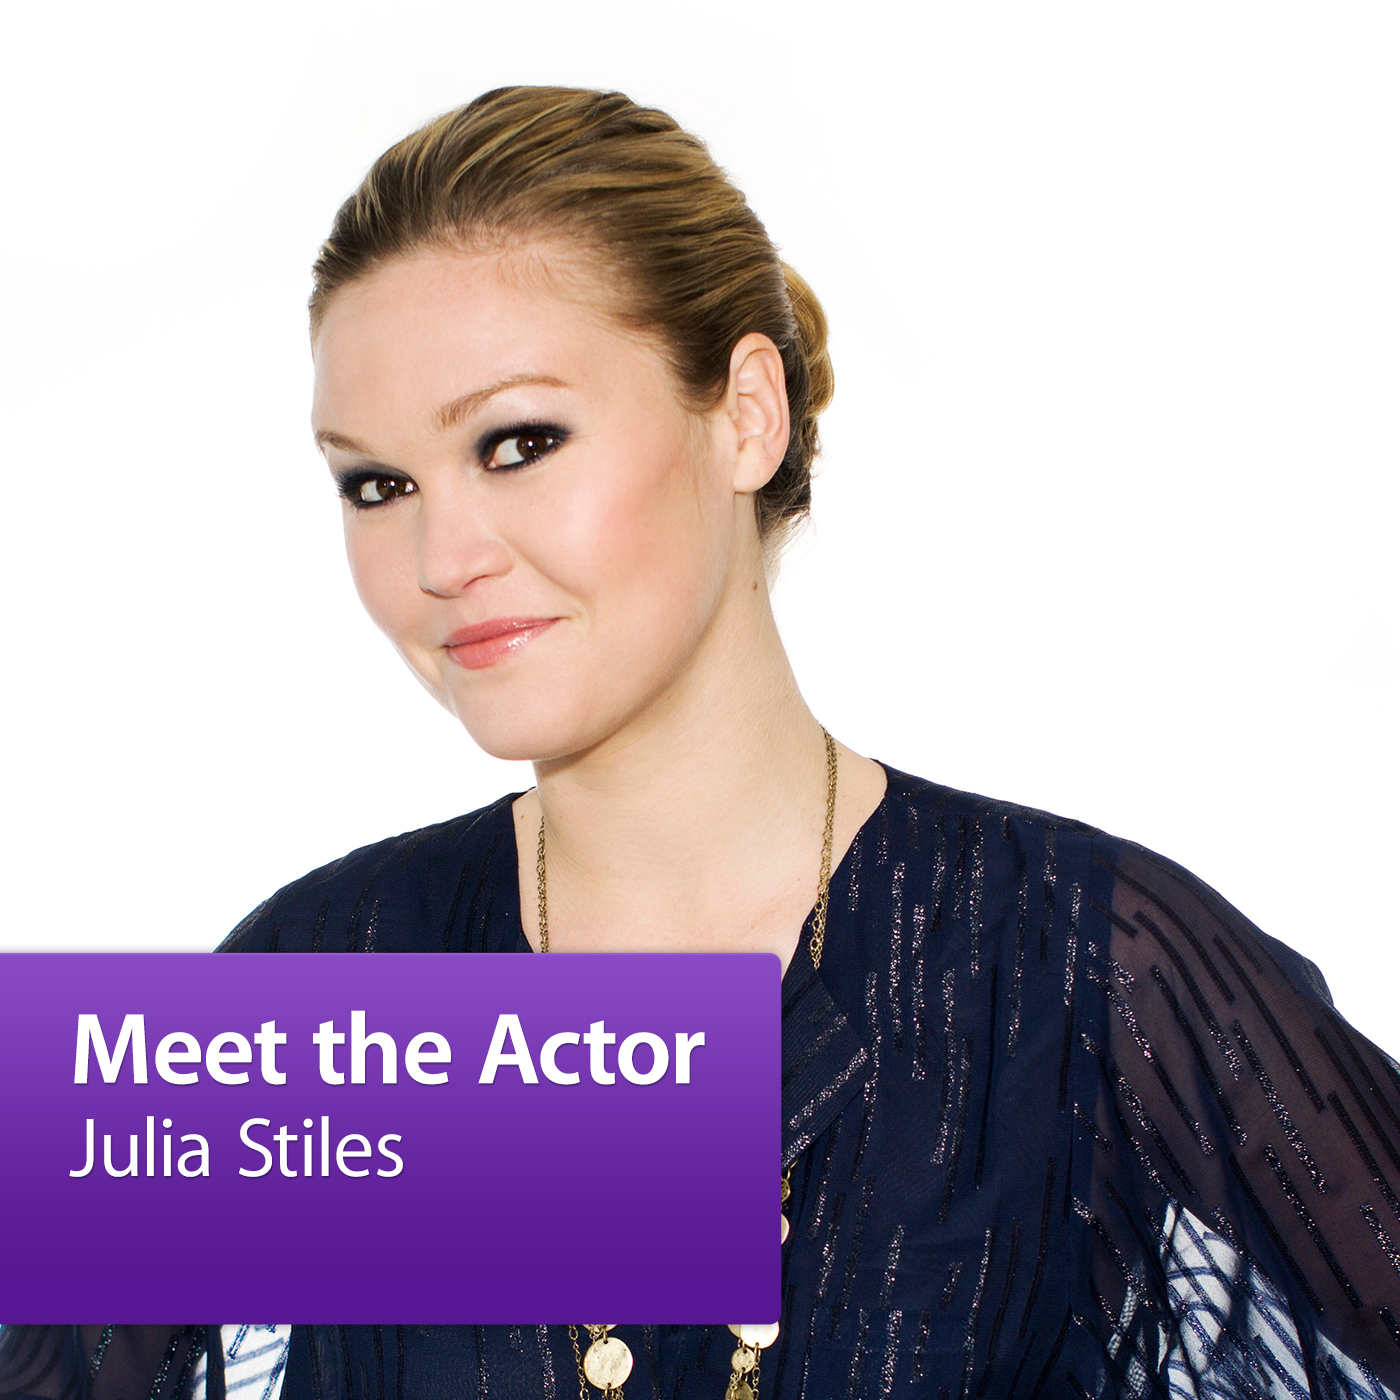 Julia Stiles: Meet the Actor